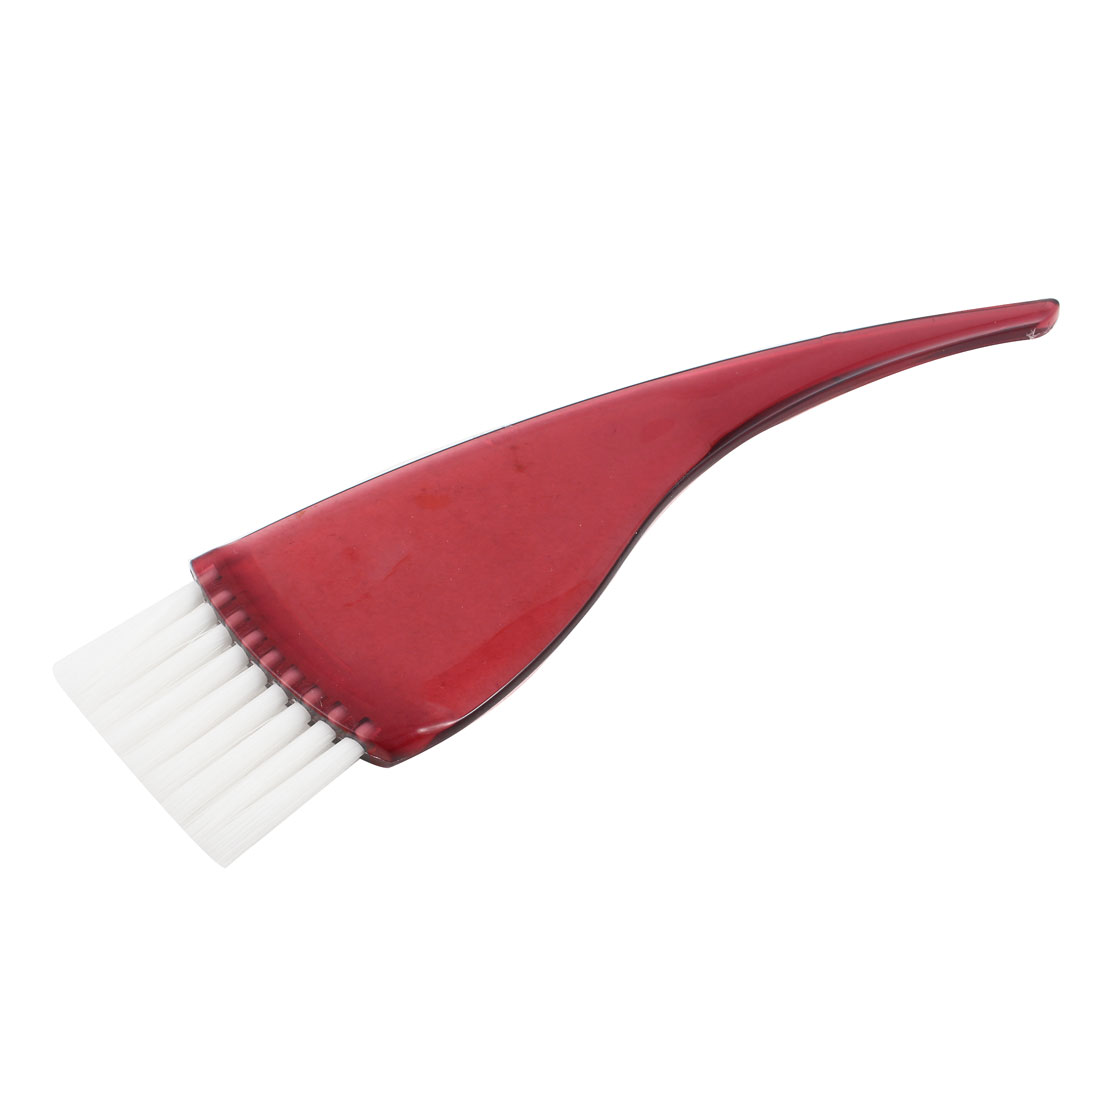 Clear Red Bend Handle Salon Hair Coloring Dye Tinted Bleach Brush